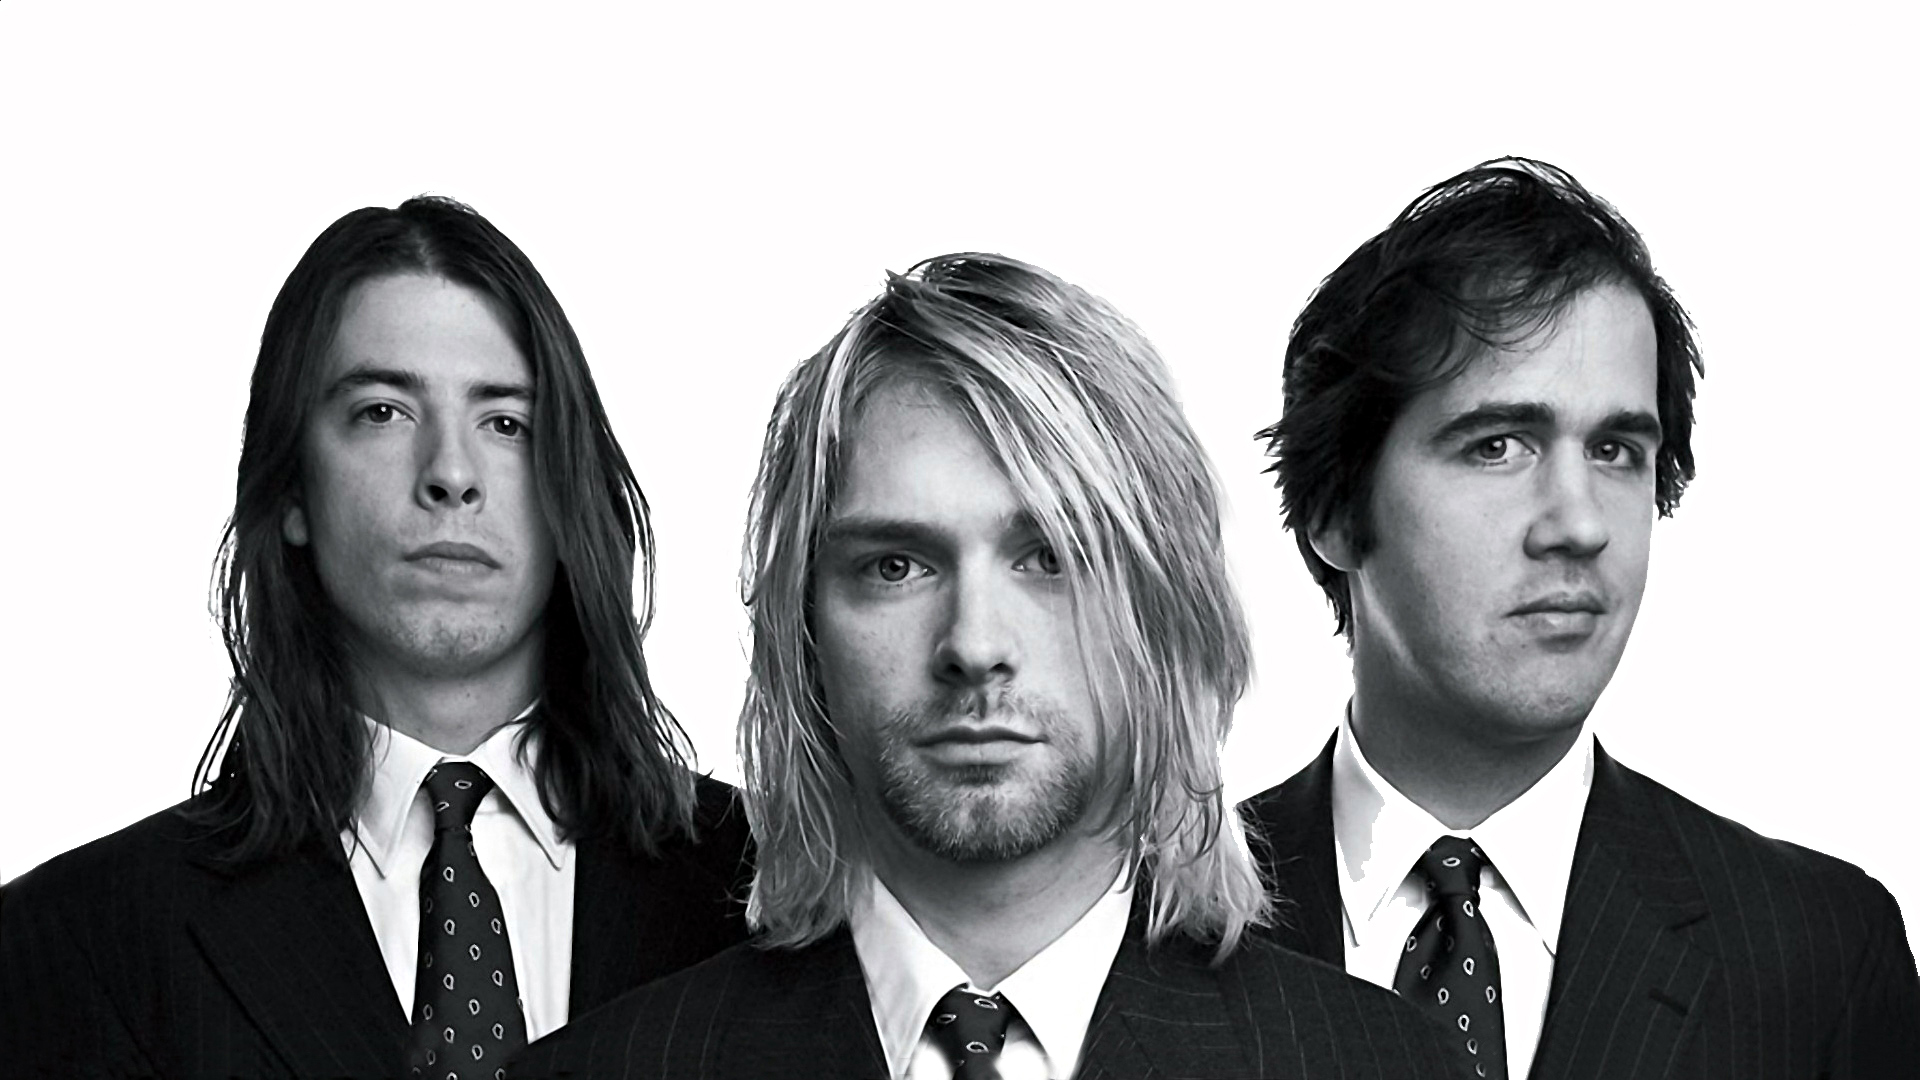 nirvana full hd wallpaper and achtergrond 1920x1080 id